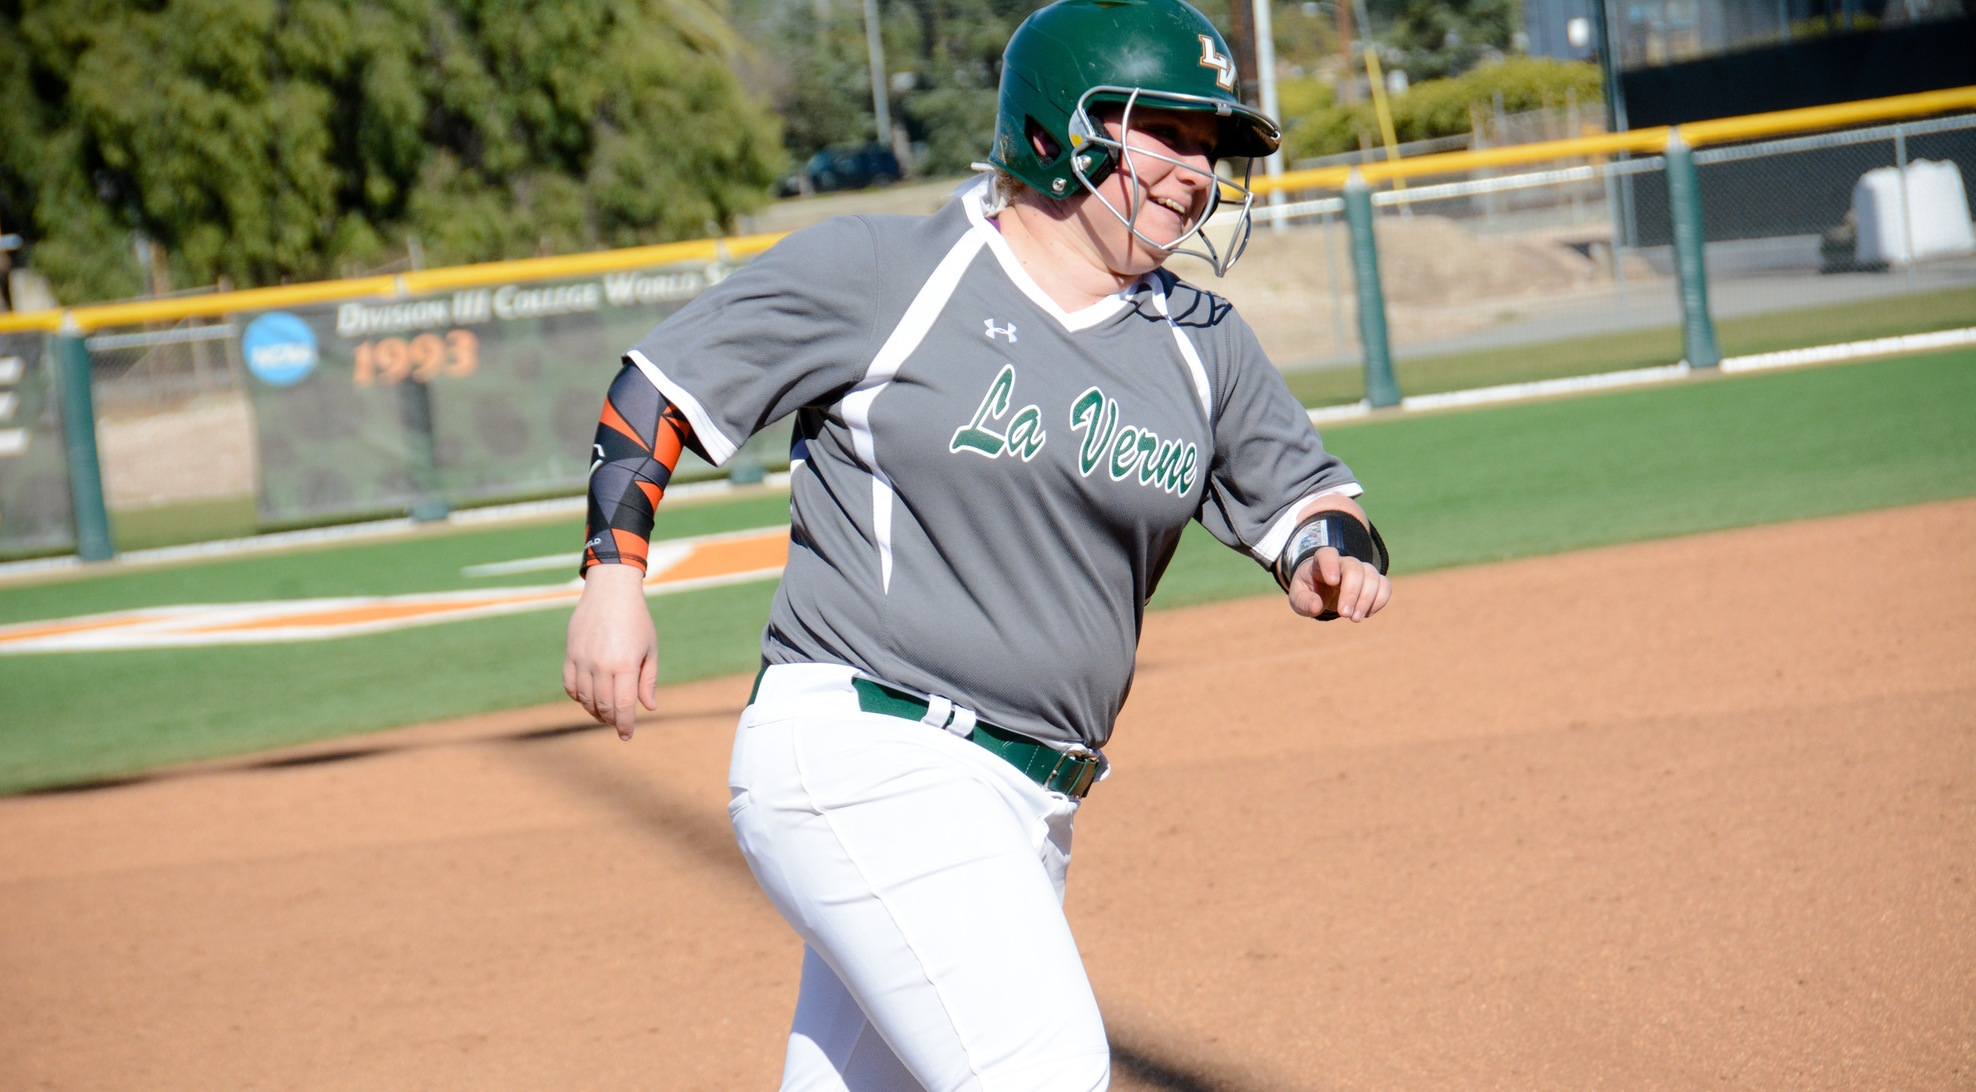 DeAngelo knocks in five to lead La Verne past Whitworth 9-2 in Game 1